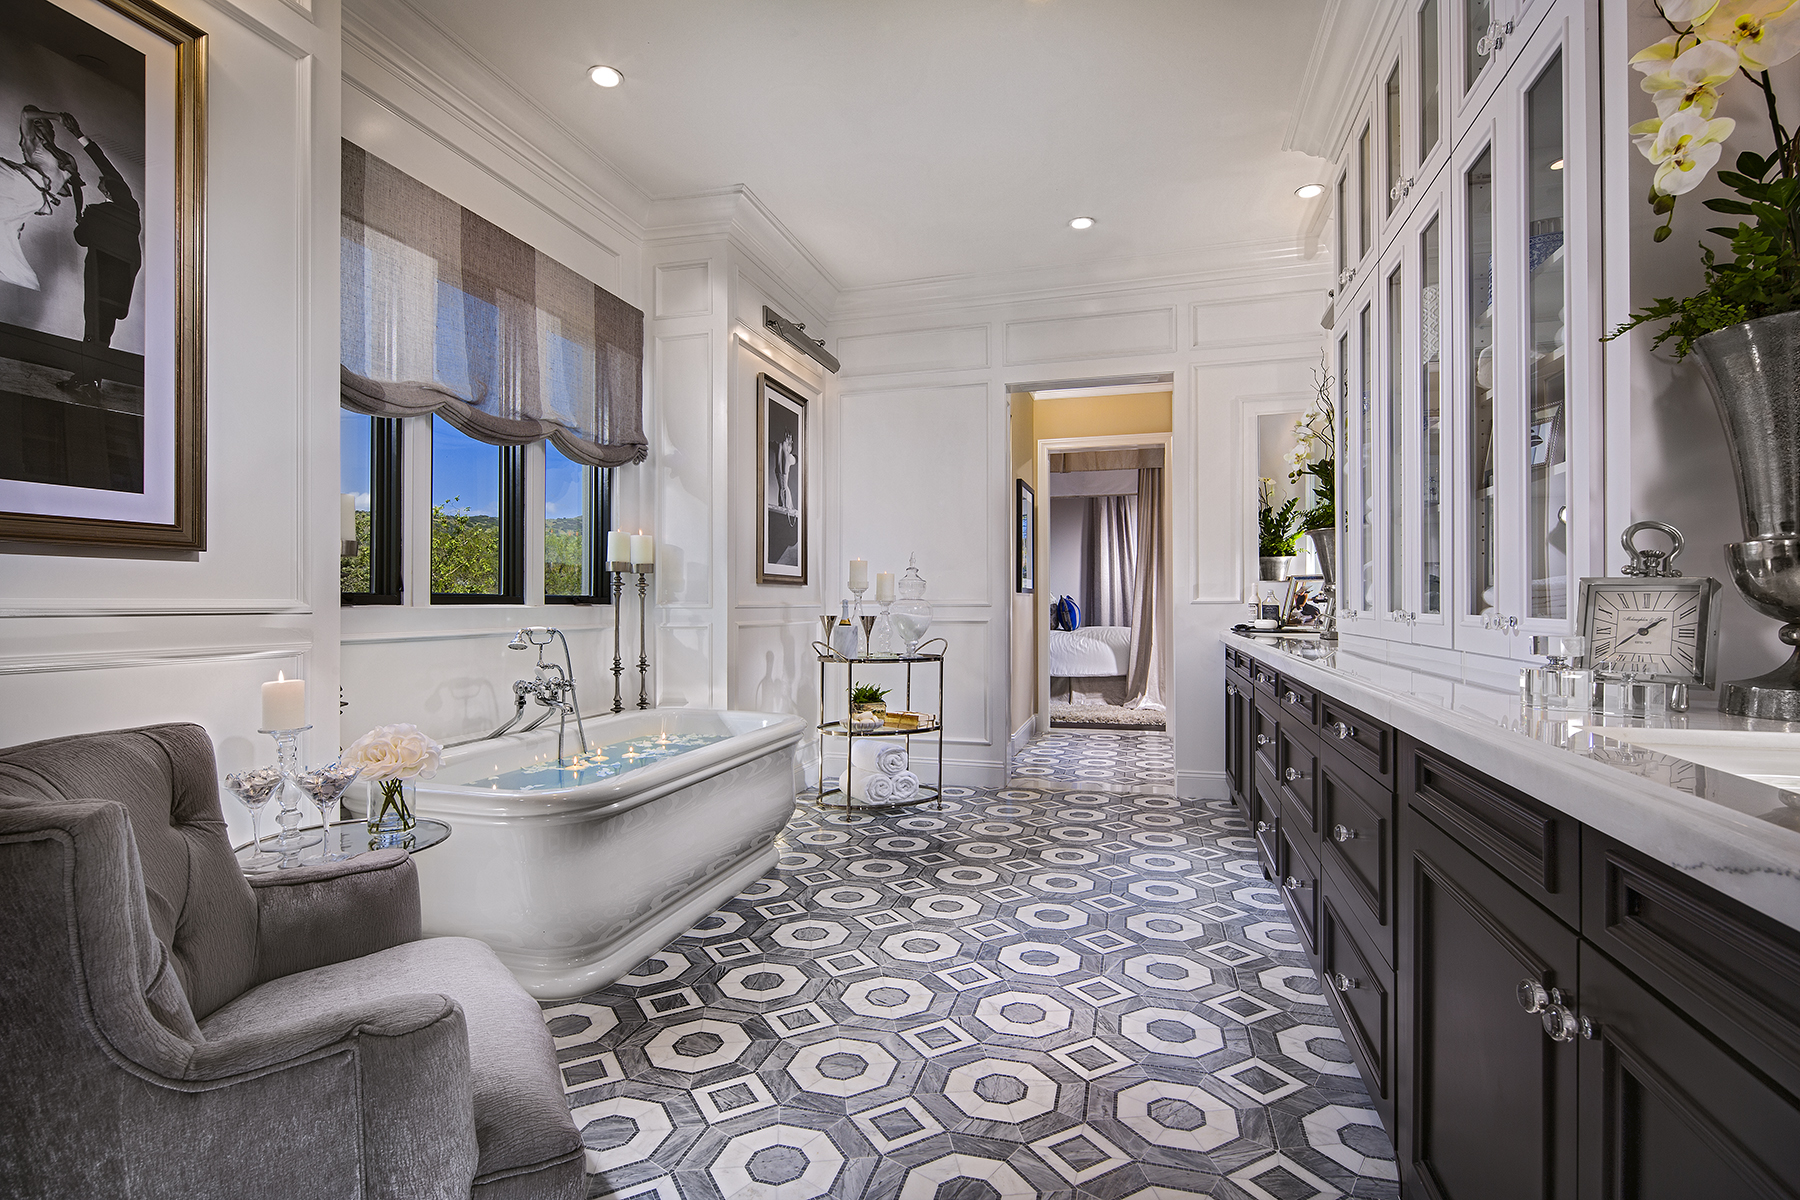 1624-02_PL3_Master_Bath_The_Oaks_DavidsonCommunities_EricFiggePhotos.jpg